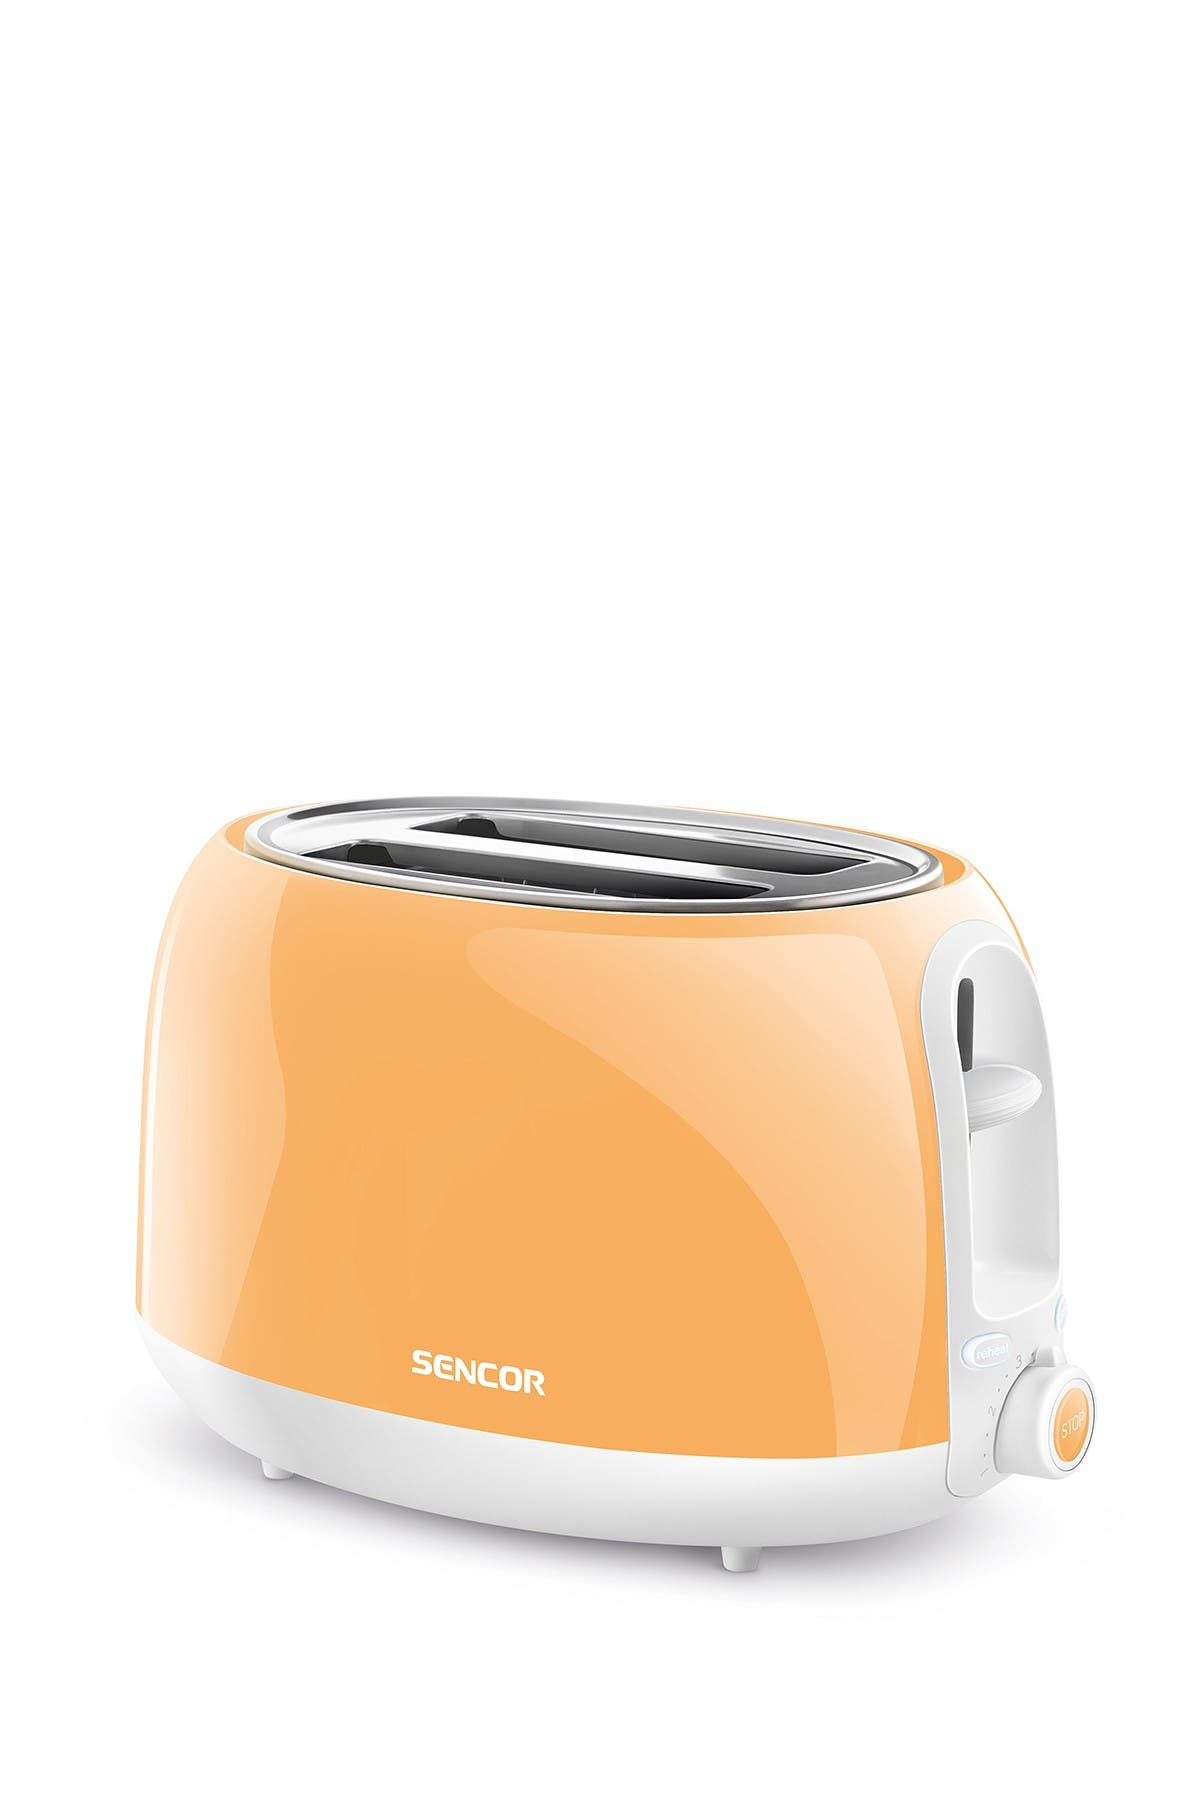 Image of SENCOR Orange 2-Slot Toaster